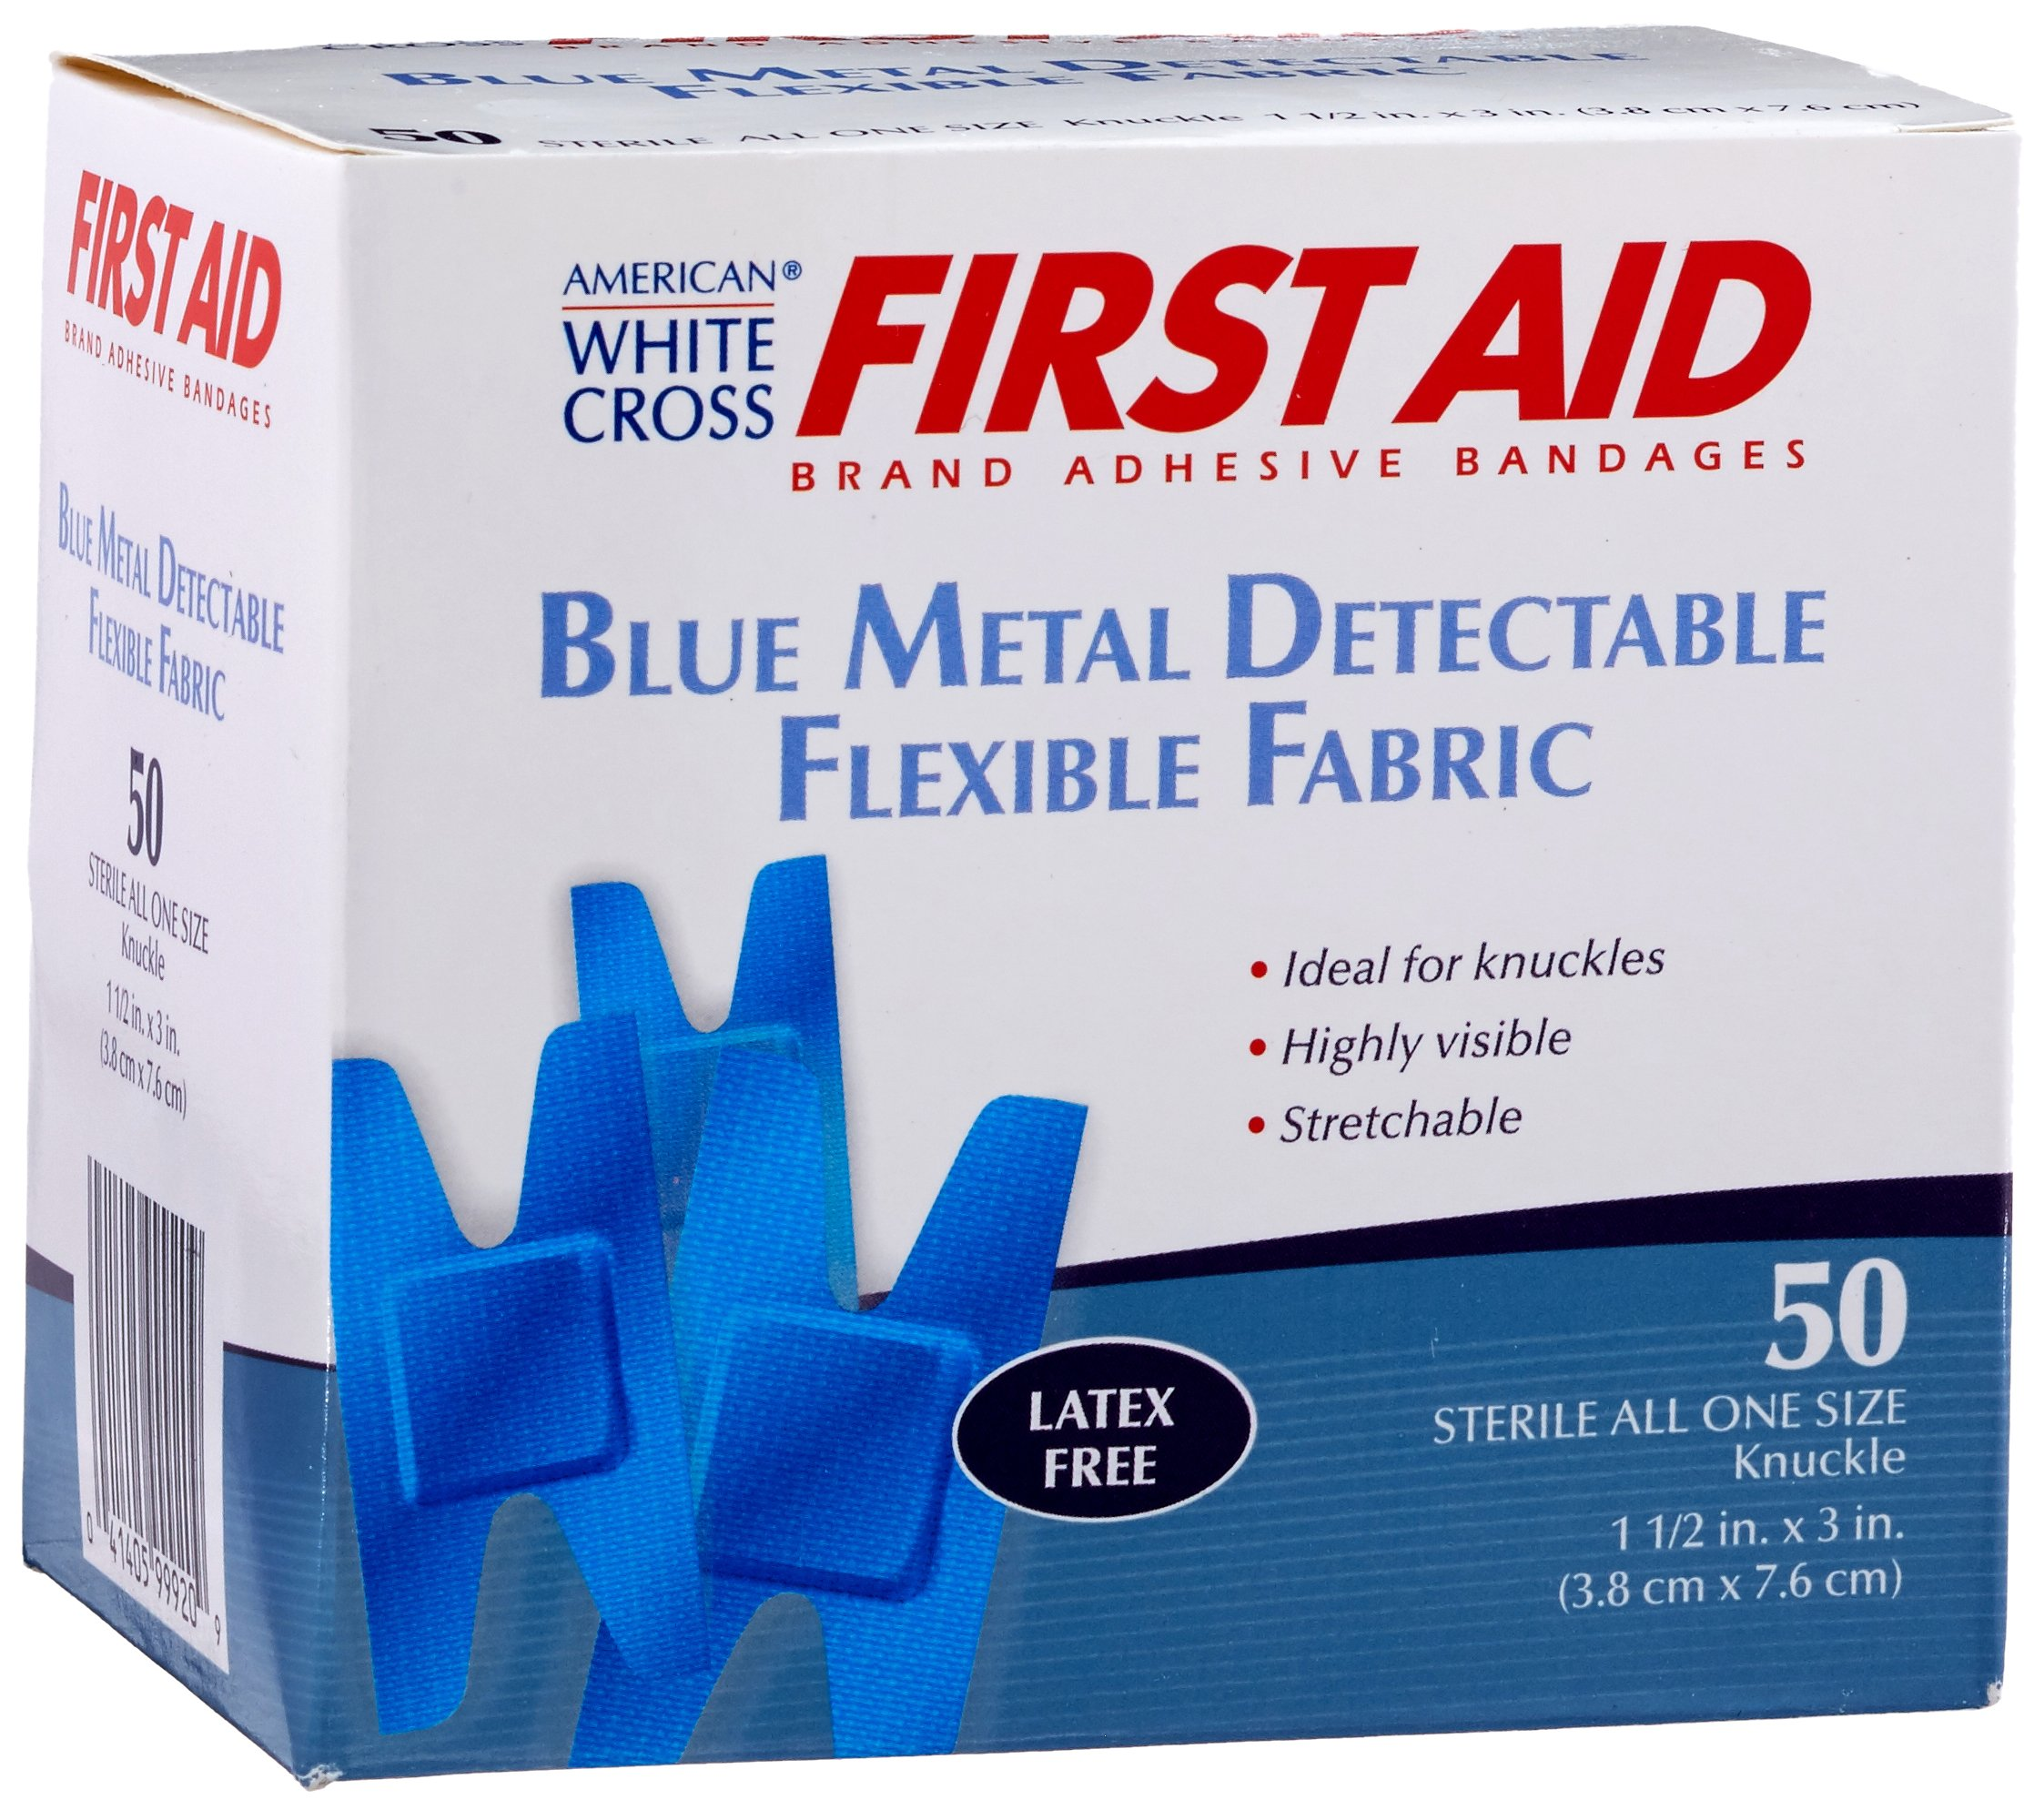 American White Cross 99920 Blue Metal Detectable Adhesive Strips, Sterile, Lightweight Flex 1-1 per 2'' x 3'' Knuckle, 50 per Box, 24 Box per Case (Pack of 1200)